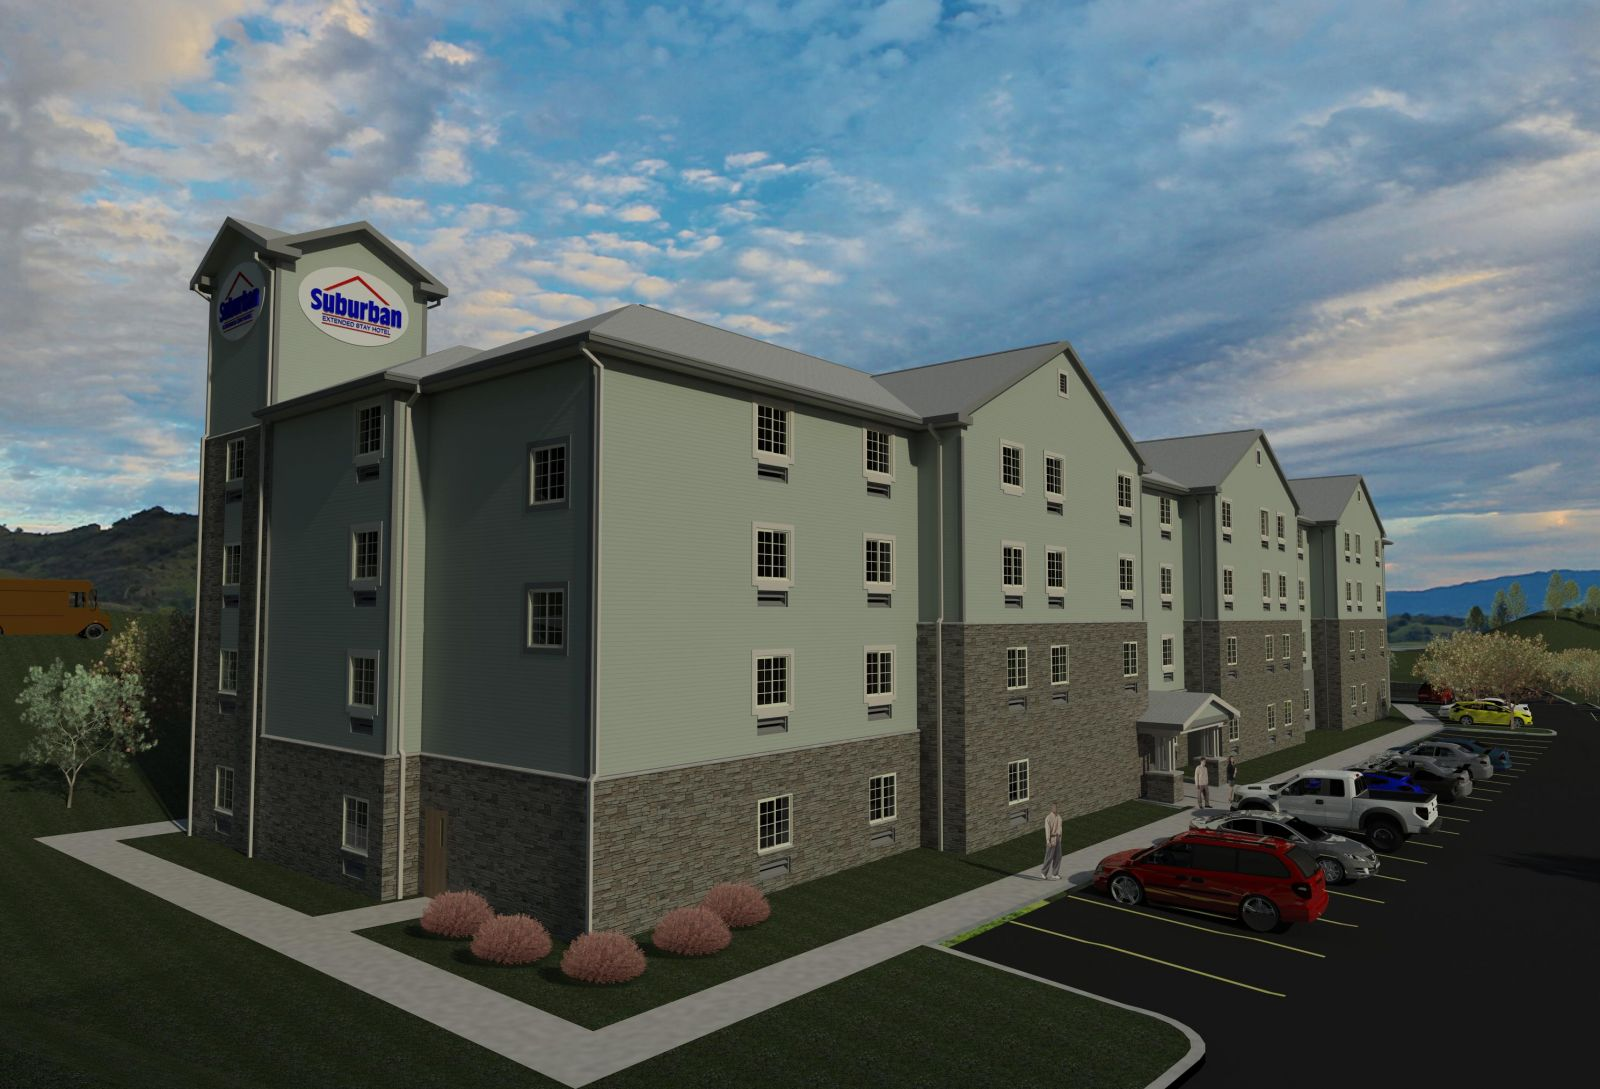 Suburban Extended Stay Monaca PA3